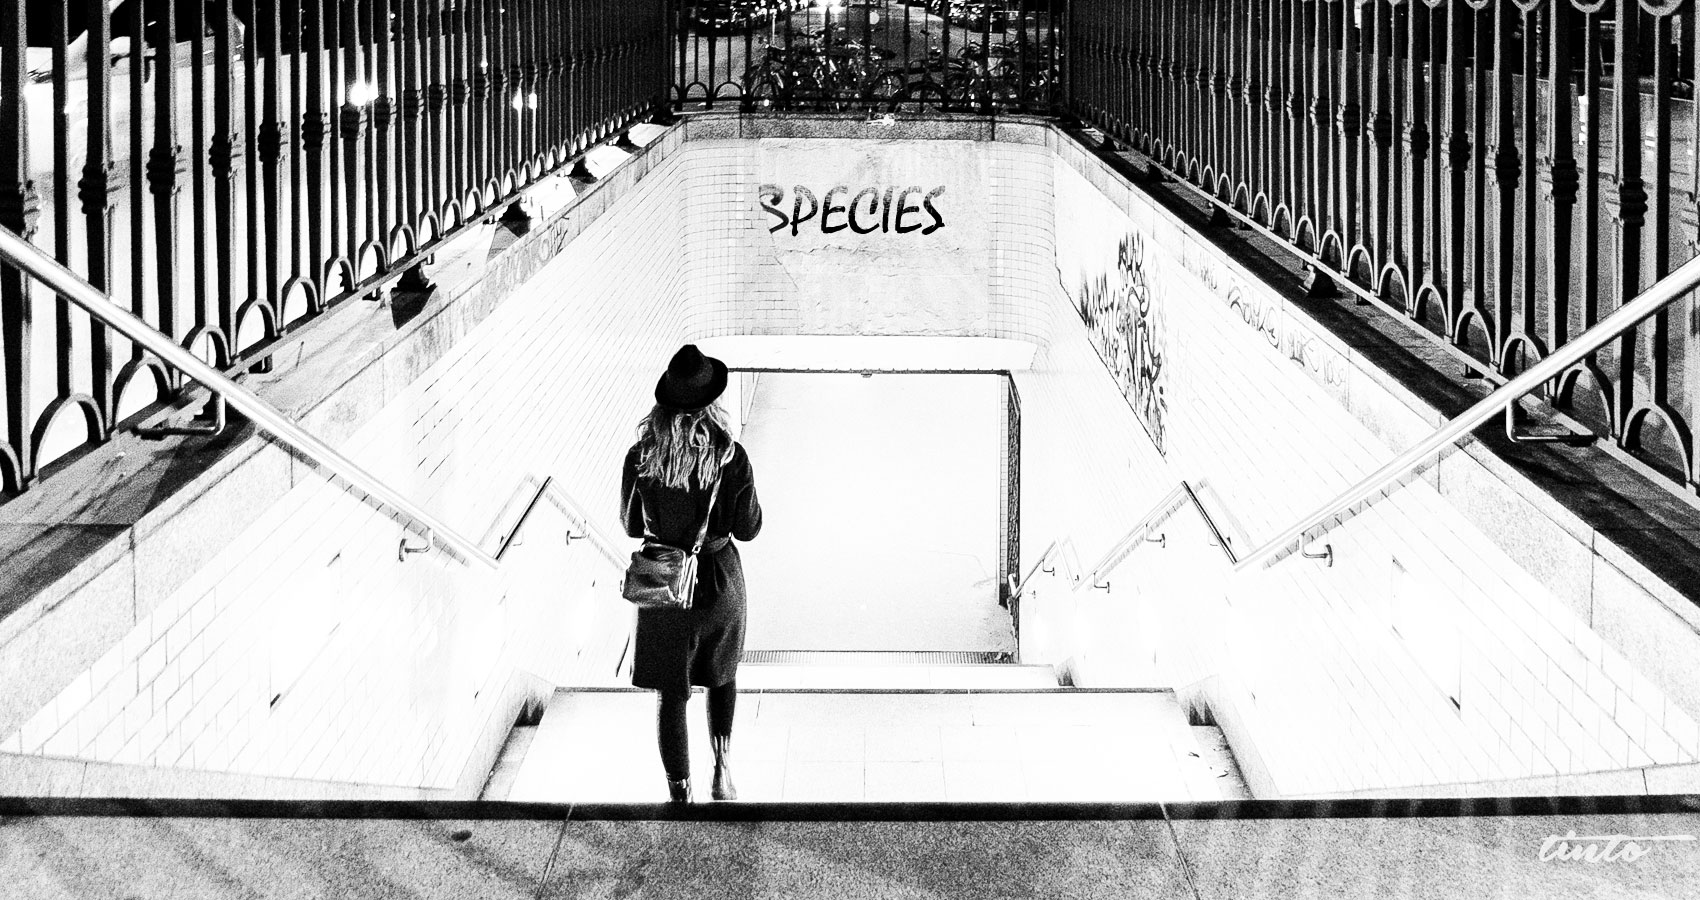 Two-Legged Species written by Anne G at Spillwords.com